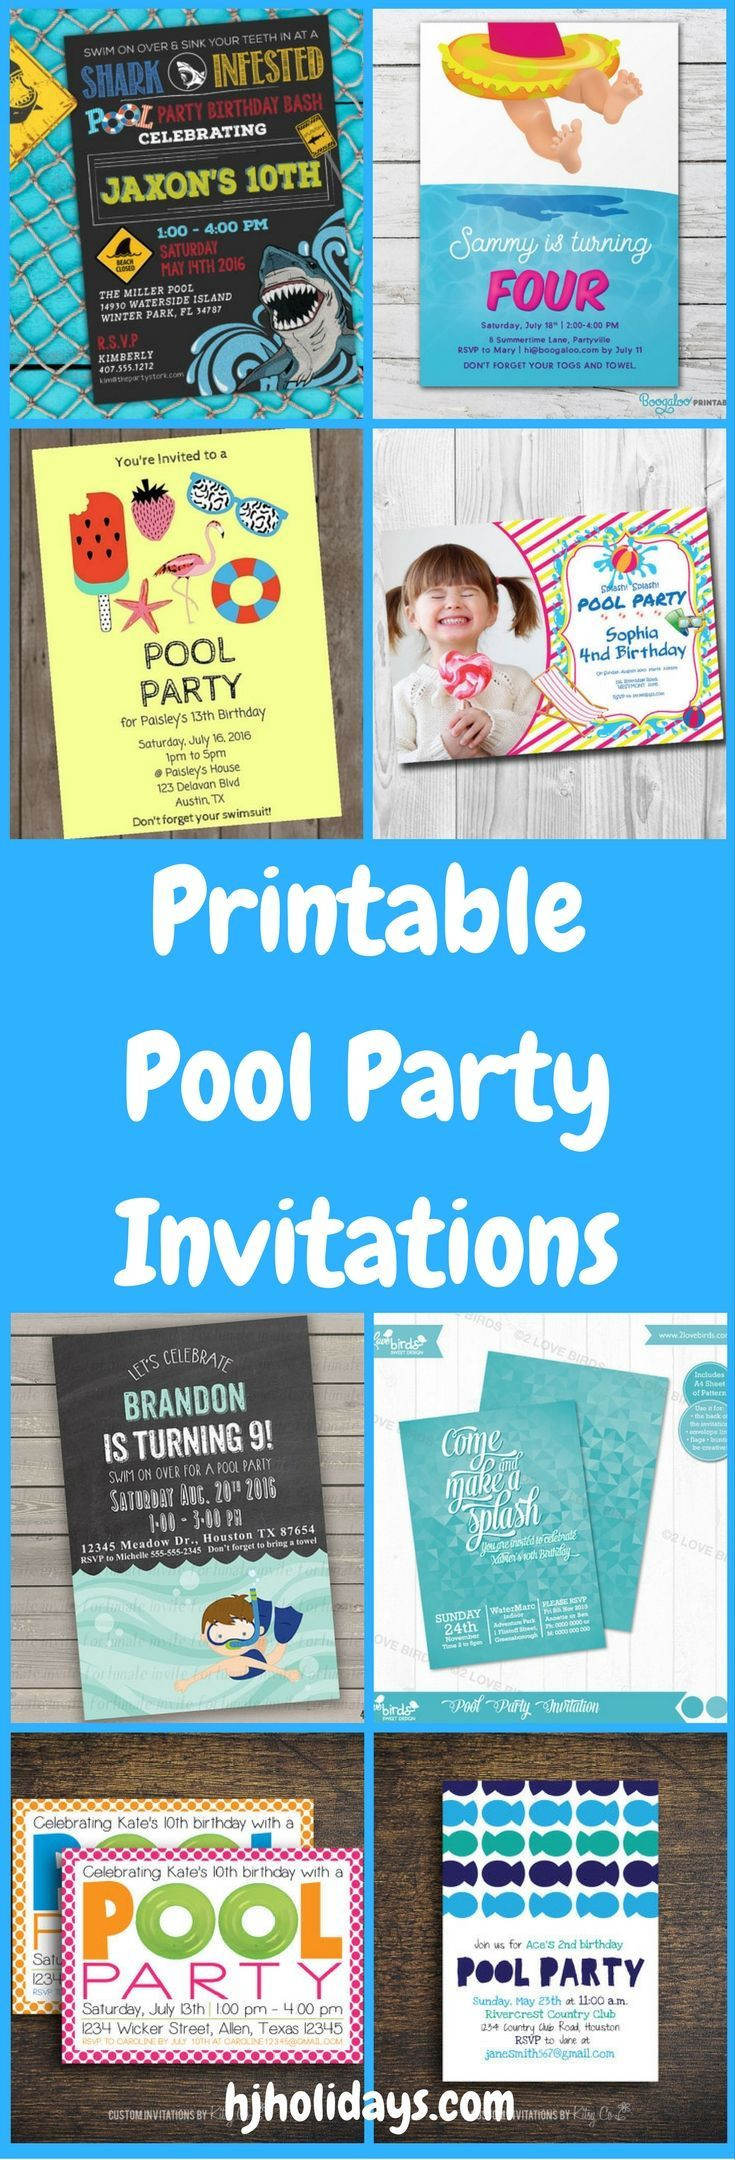 Pool Party Invitations Ideas  Printable Pool Party Invitations for Kids